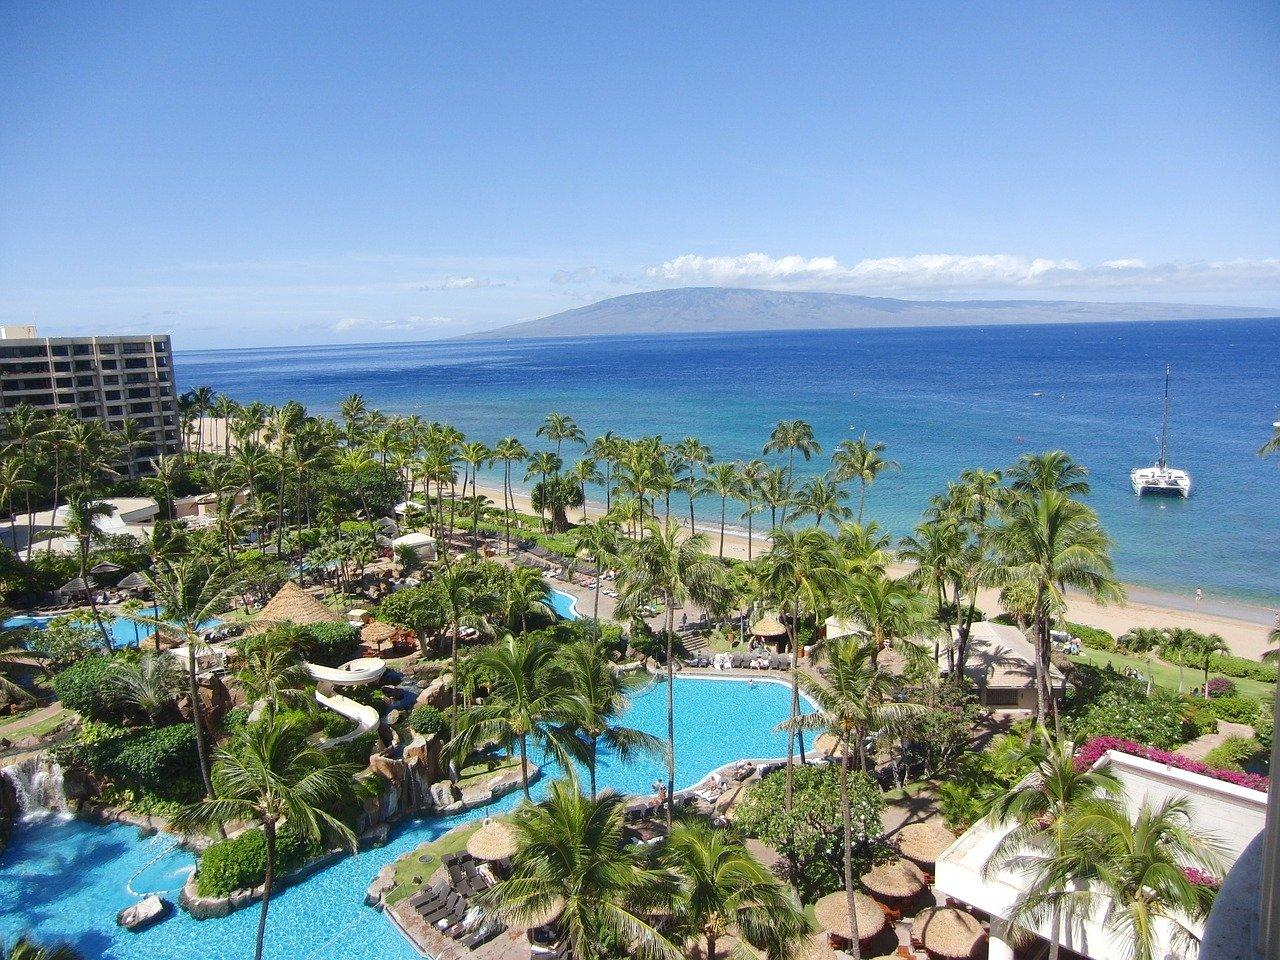 Hawaii holds off tourism reopening until September